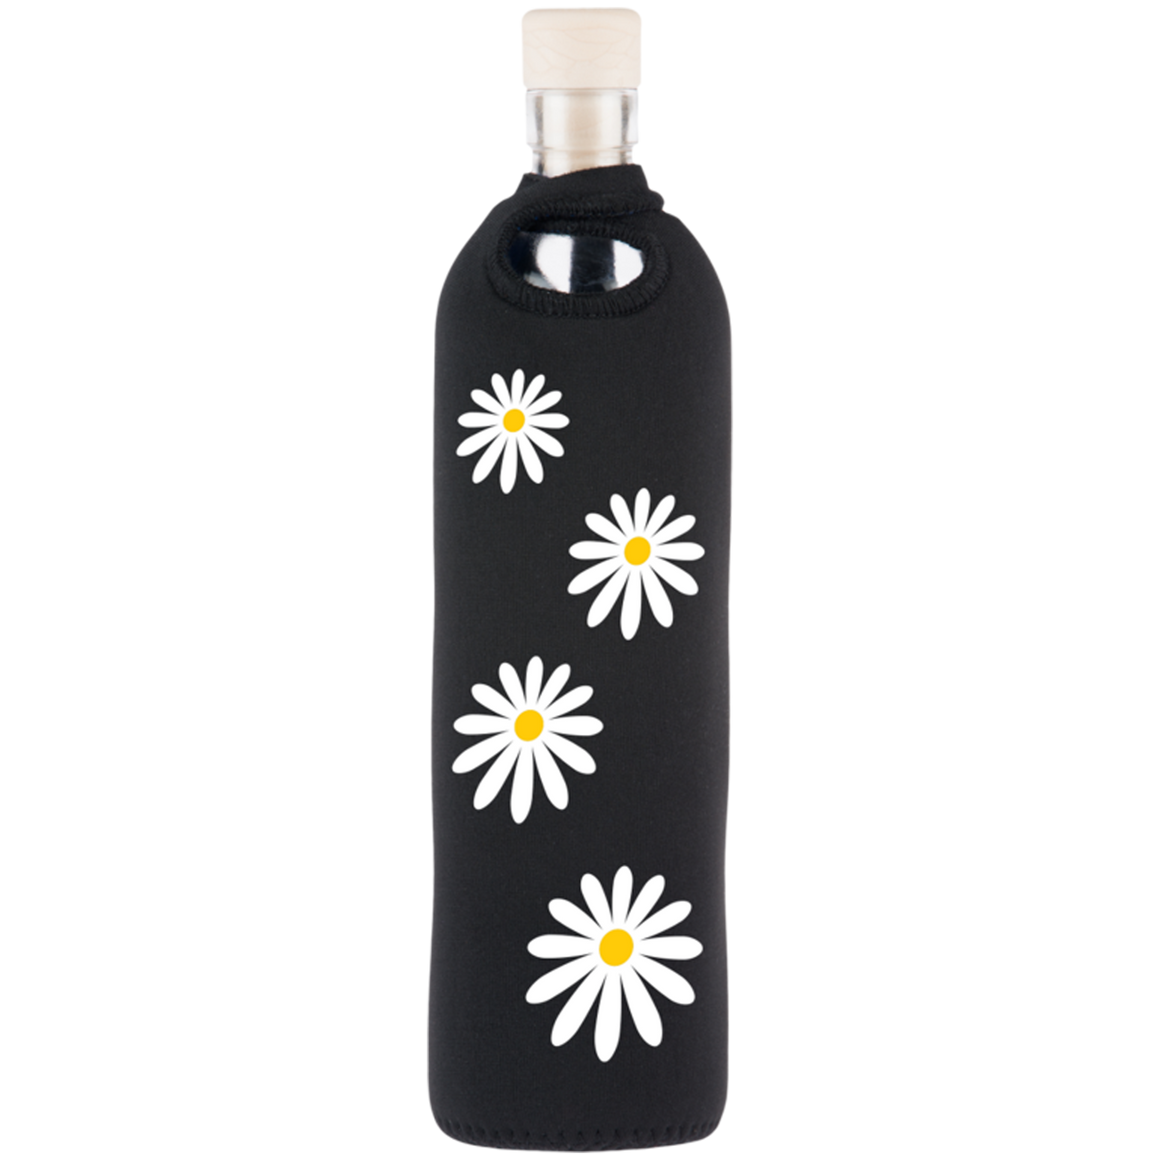 Neo Design - Daisies (500/750 ml) - Aldha